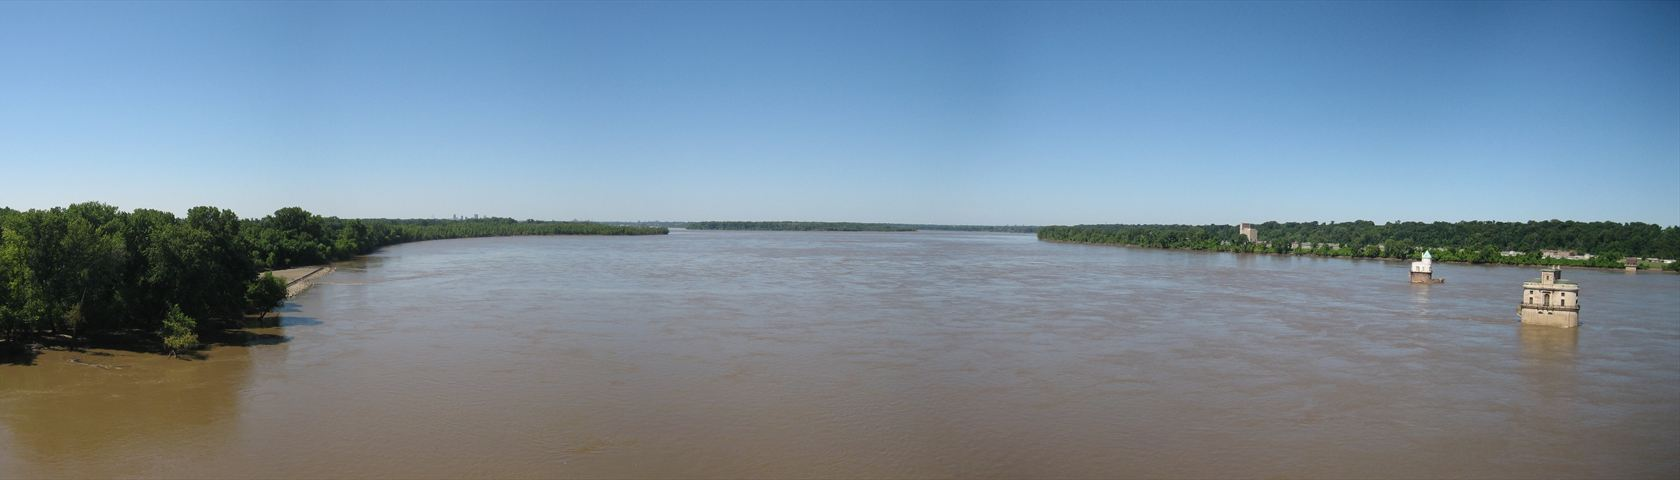 Muddy Mississippi River